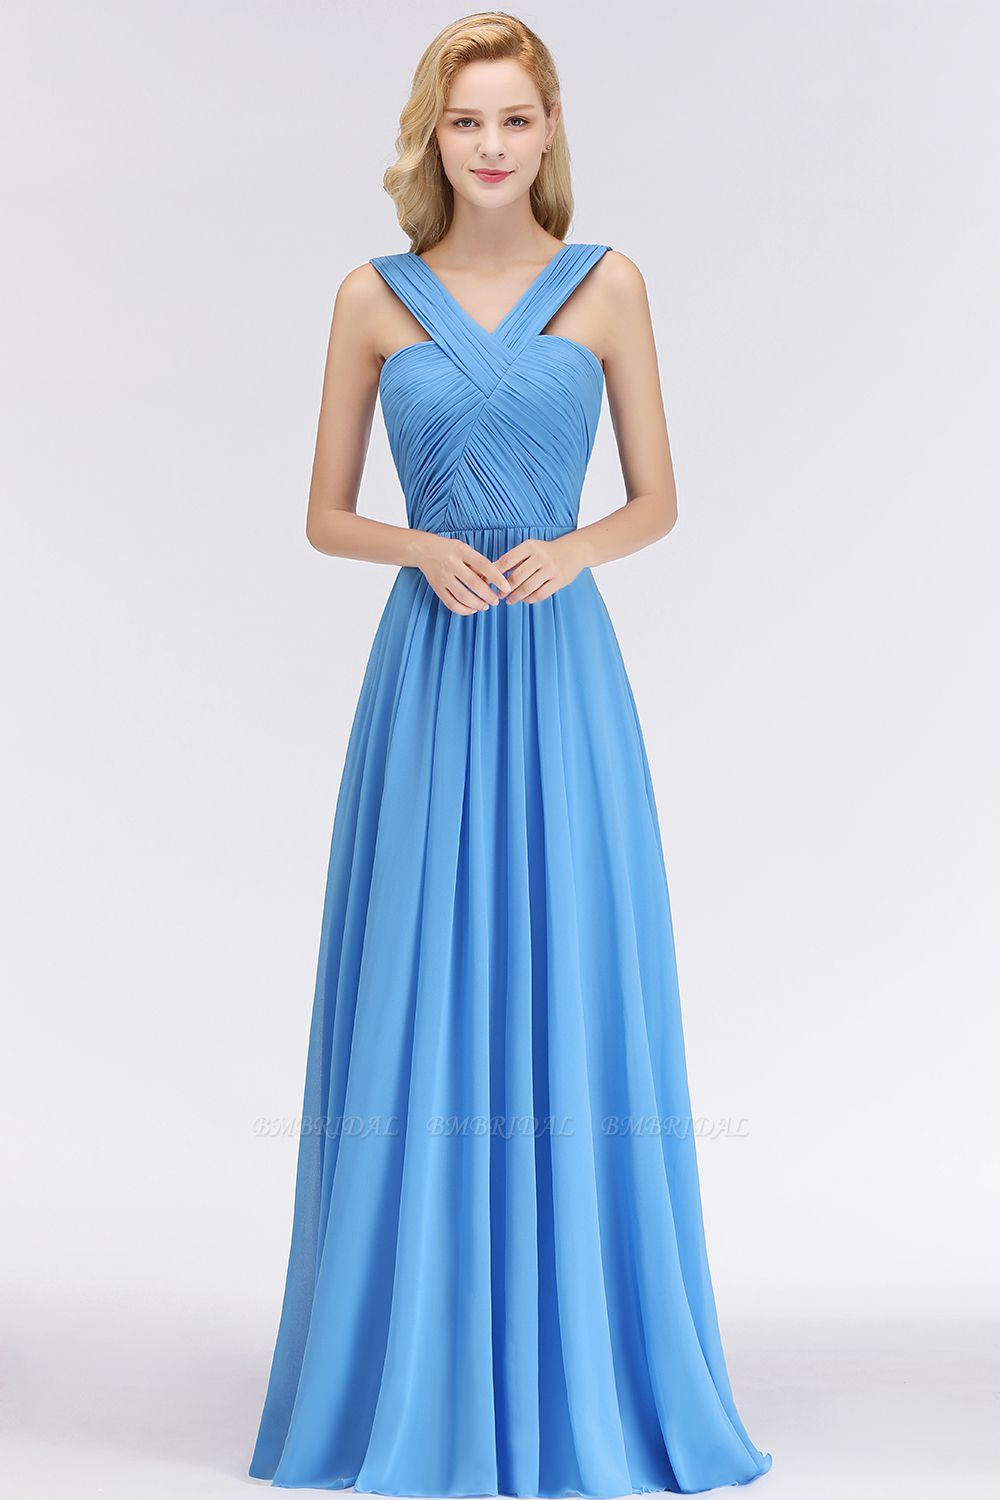 Chic Crisscross Ocean Blue Junior Bridesmaid Dresses Affordable Chiffon Ruffle Maid of Honor Dresses